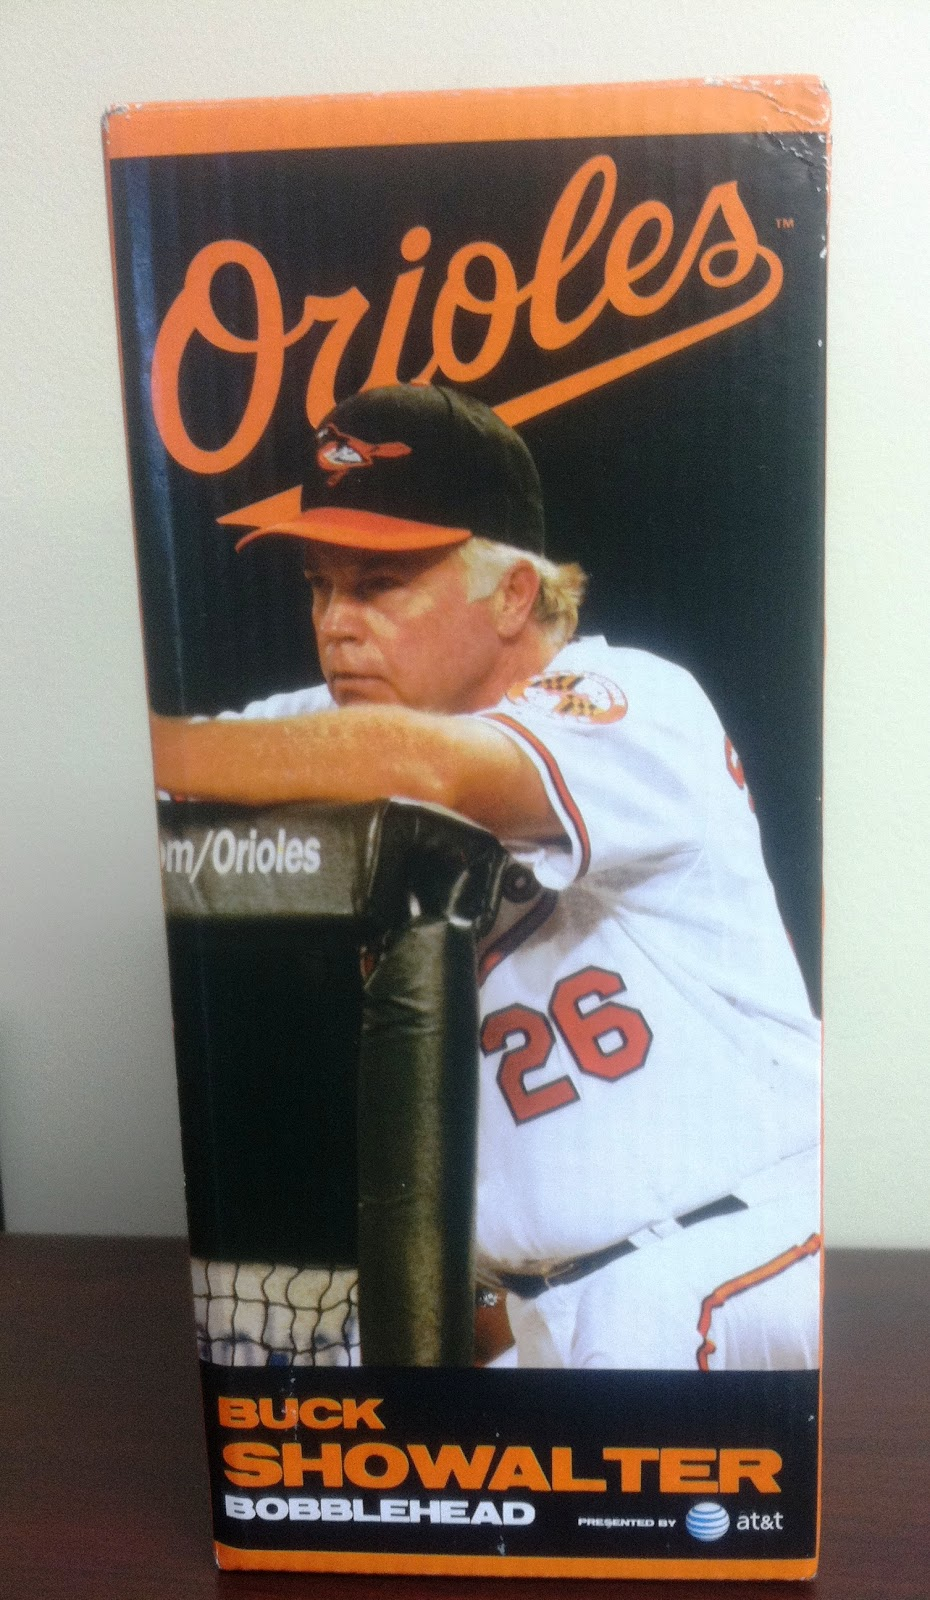 76a7fc1bf45 The Great Orioles Autograph Project  Orioles Bobblehead of the Week ...